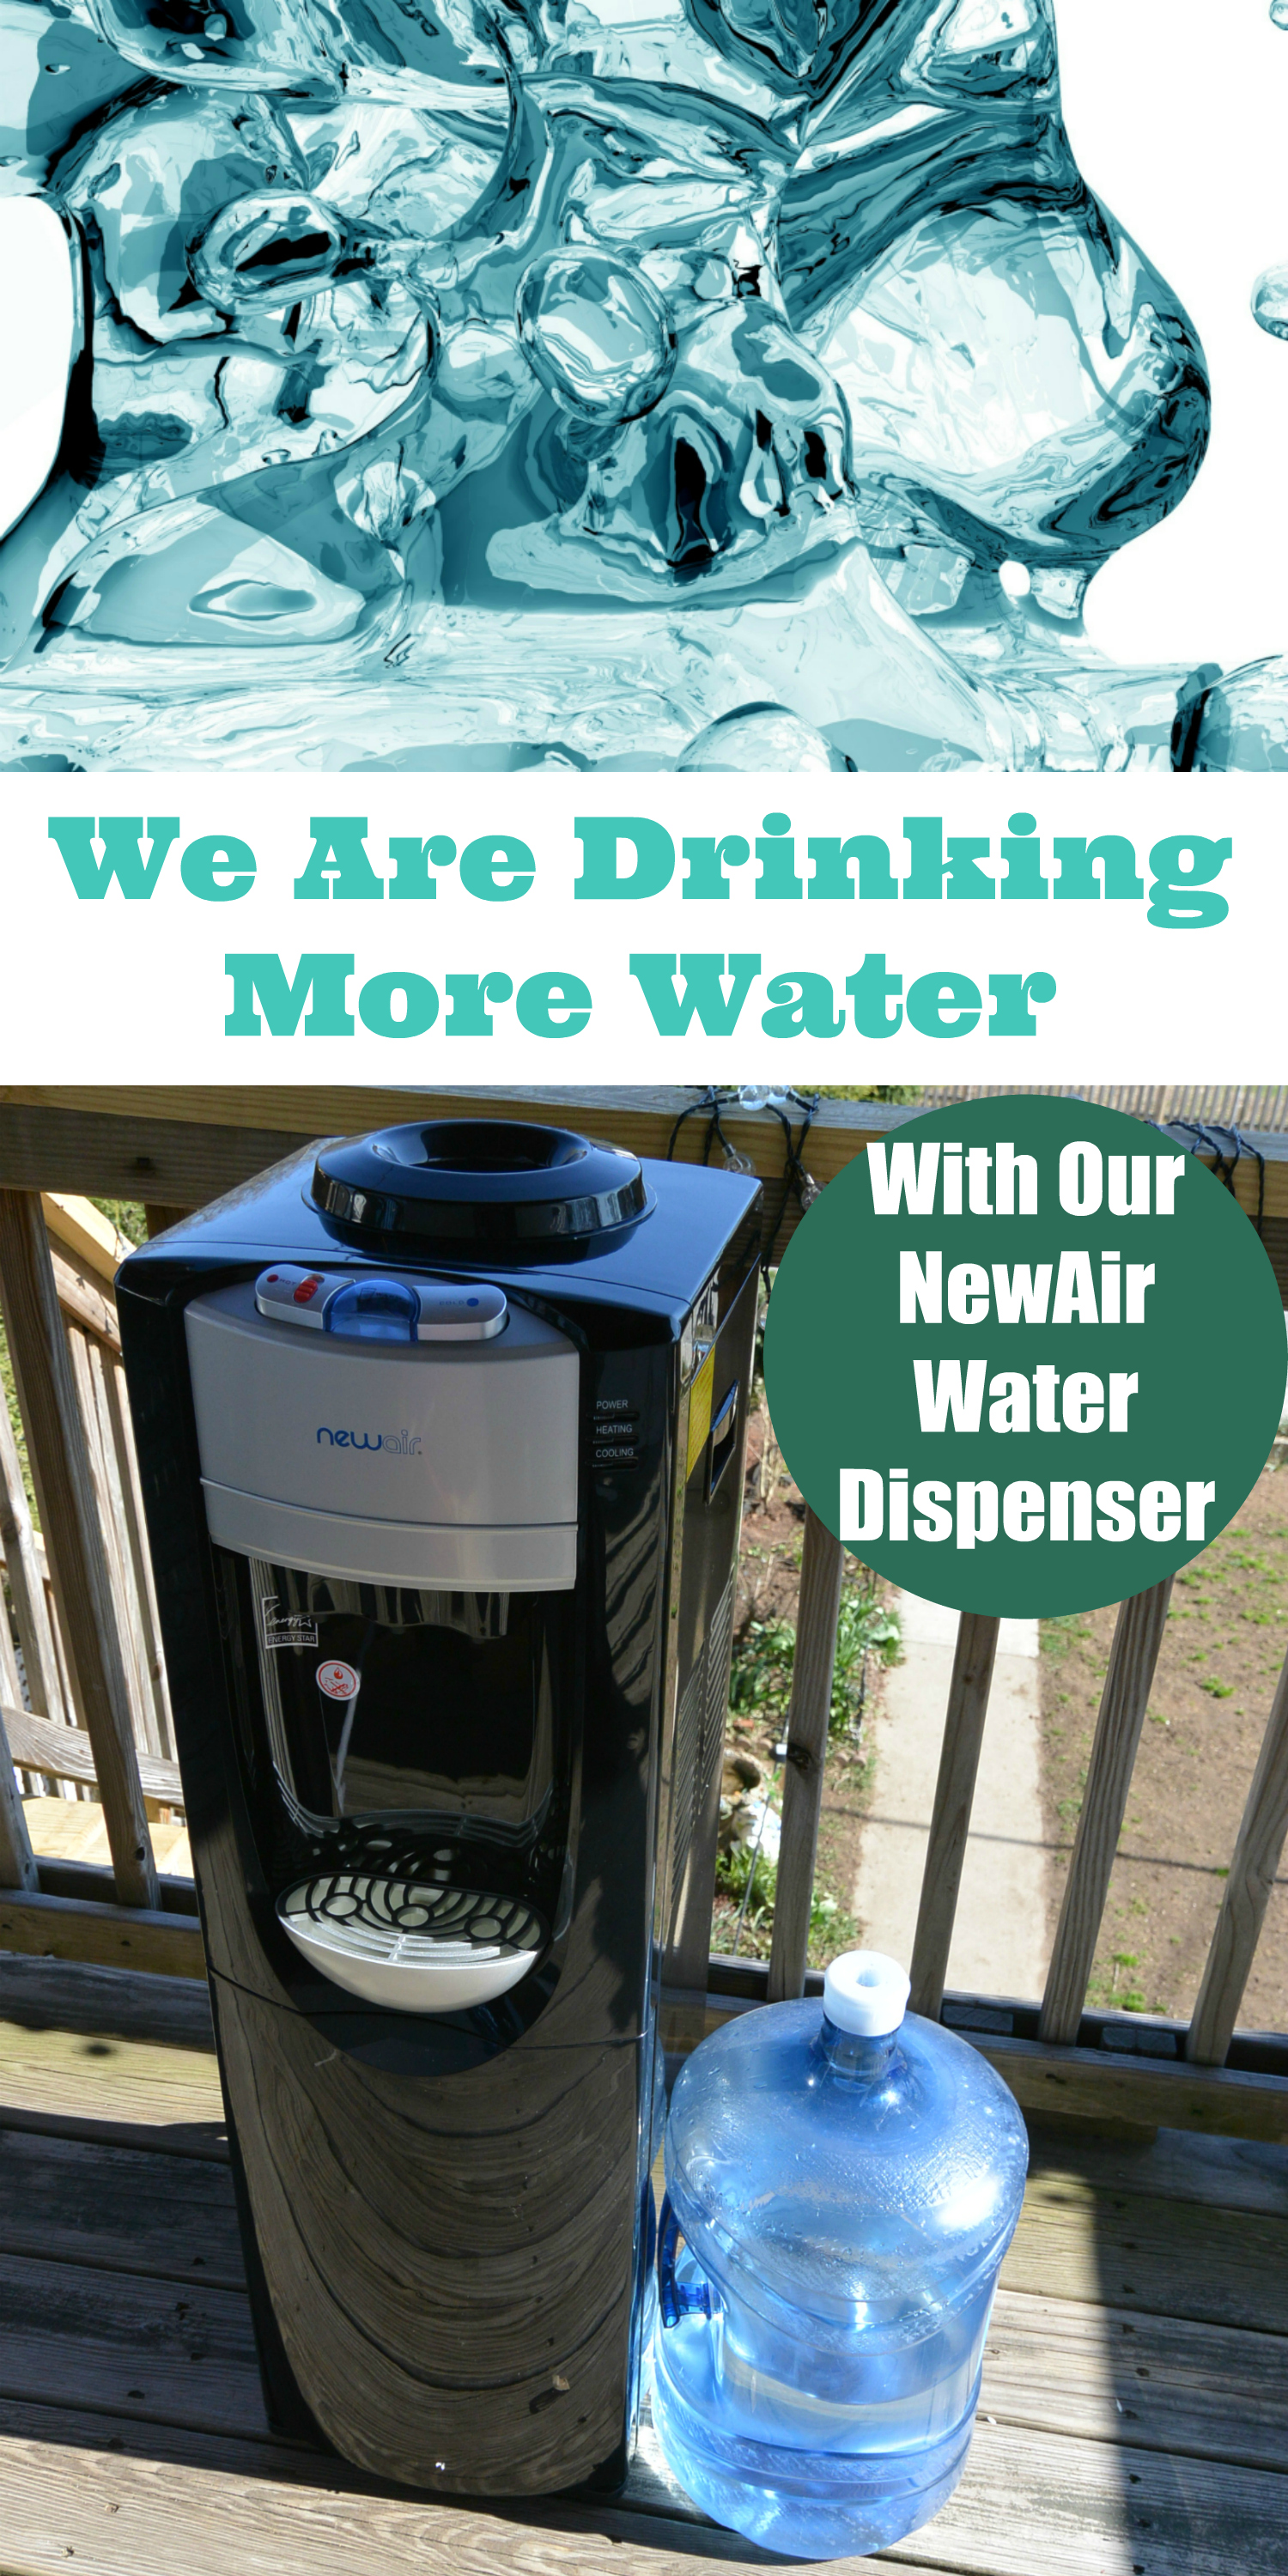 We Are Drinking More Water With Our NewAir Water Dispenser